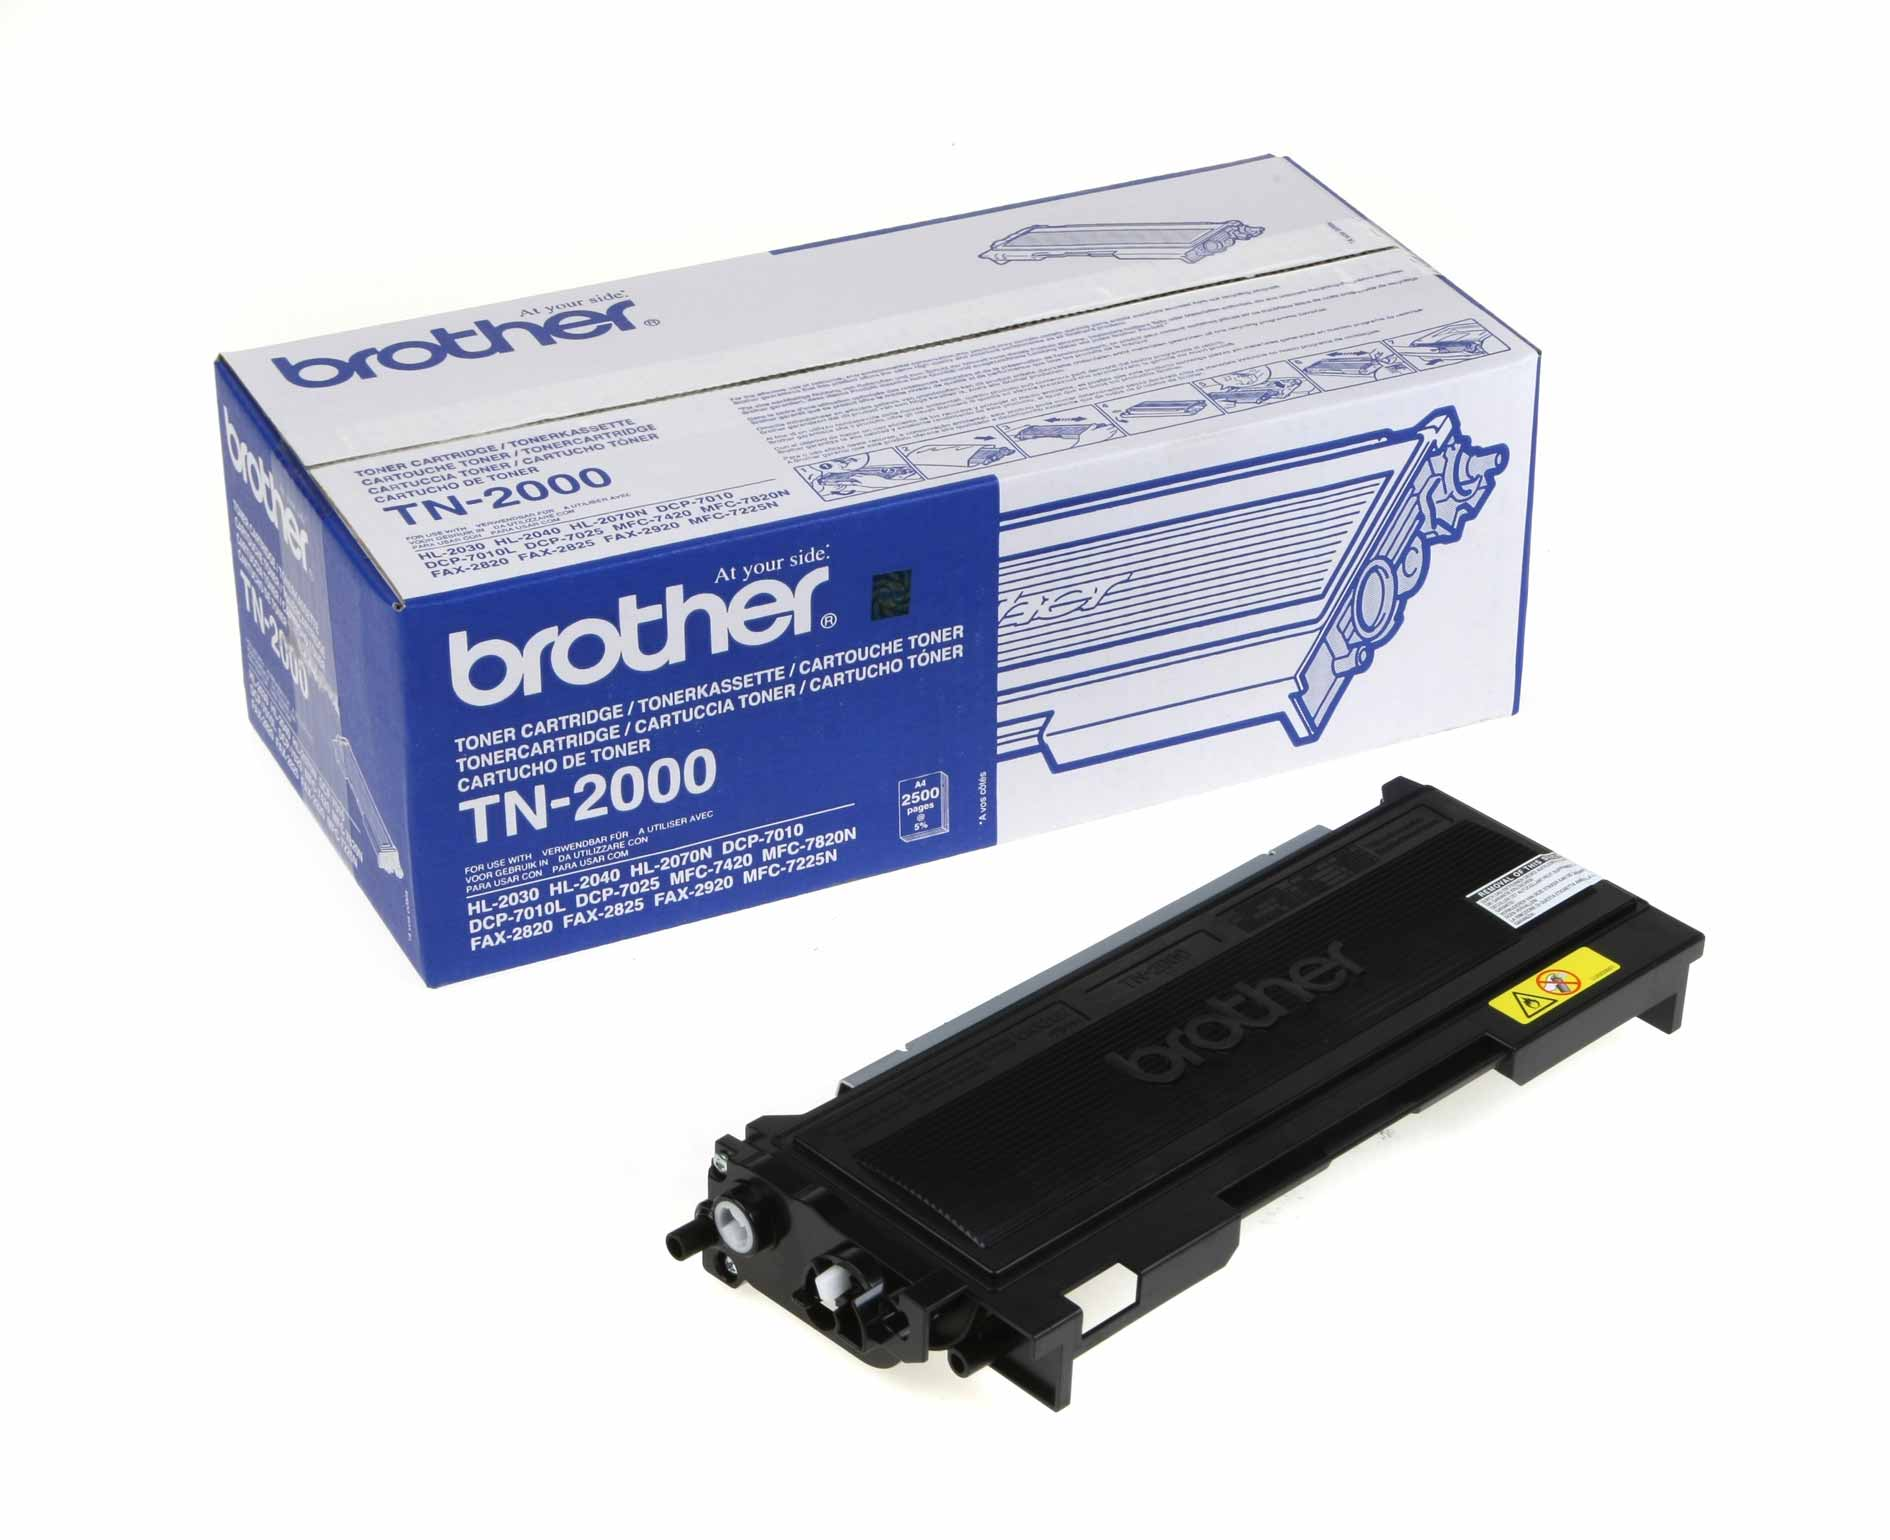 Venta de Toner Original Brother TN-2000